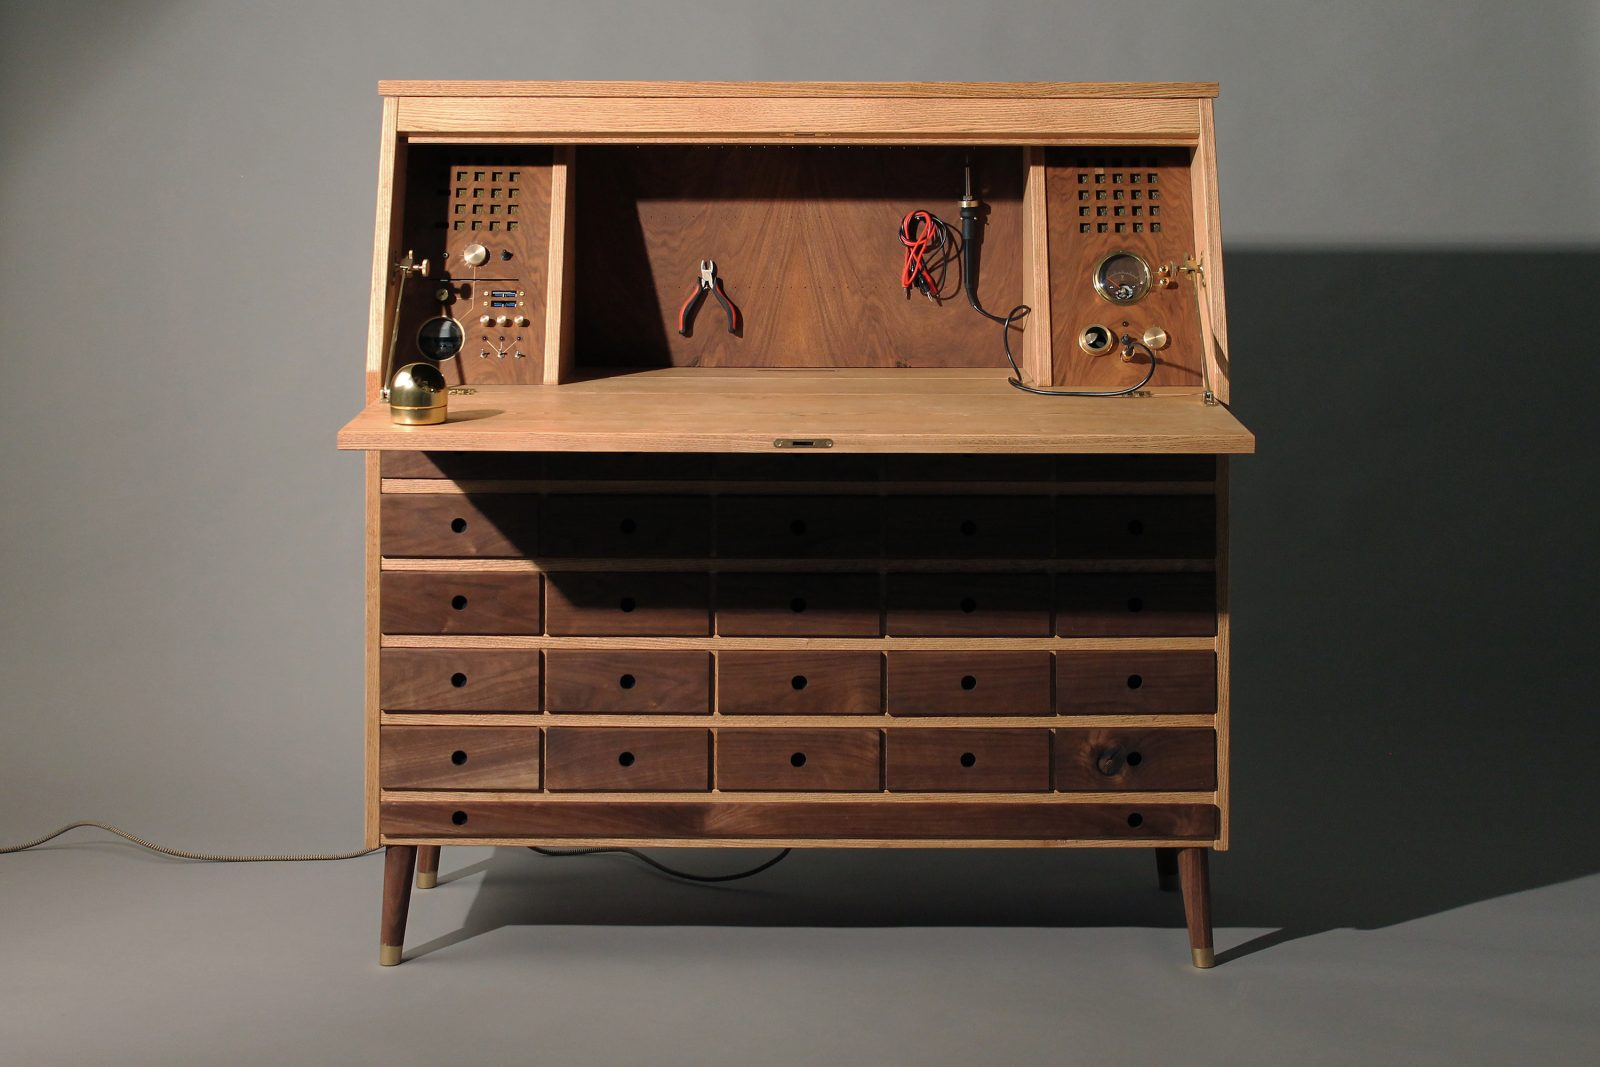 The Tempel Workbench